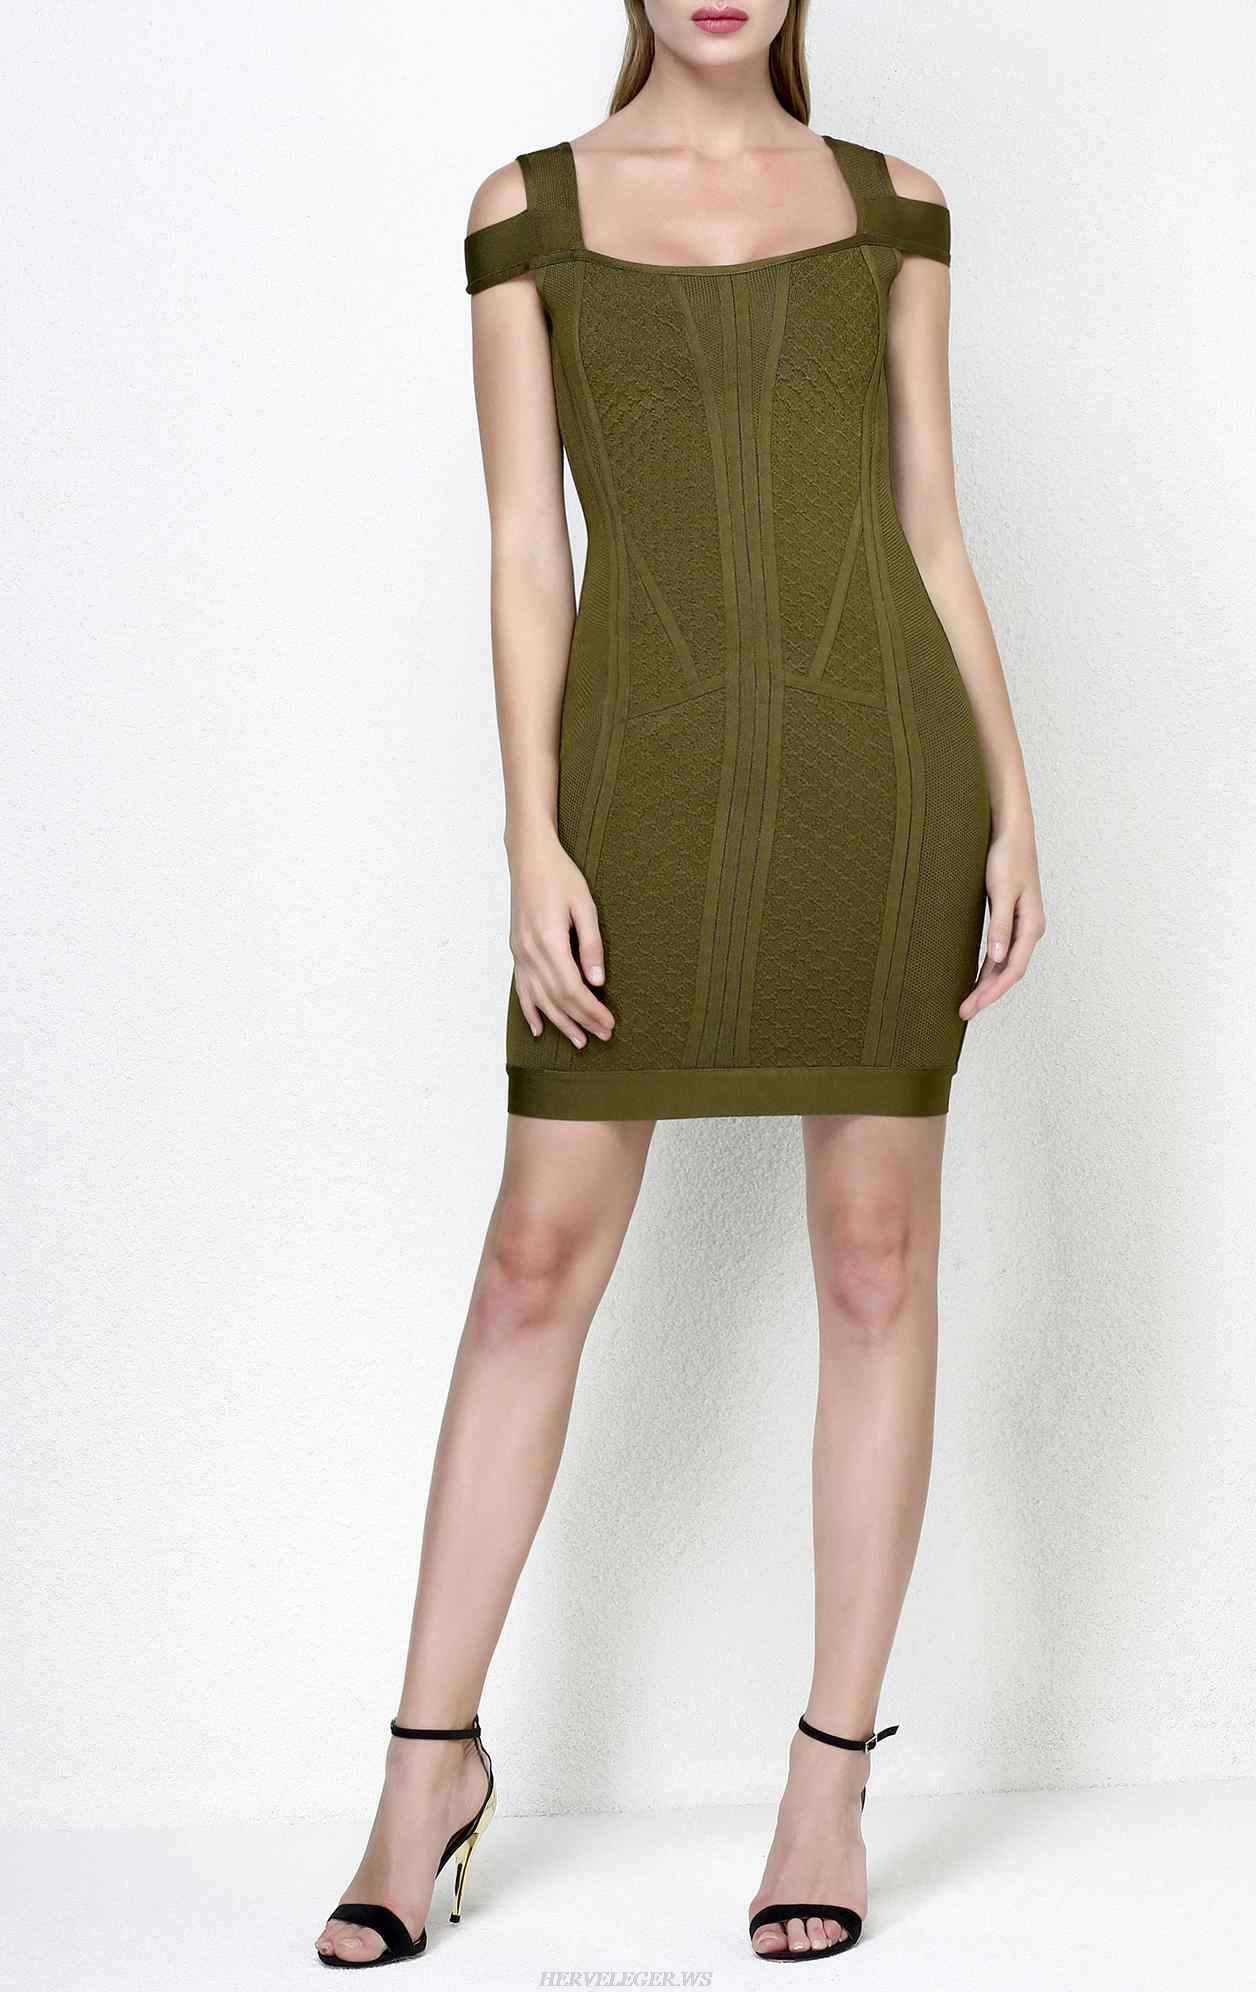 Herve Leger Evanne Multi Texture Mesh Dress